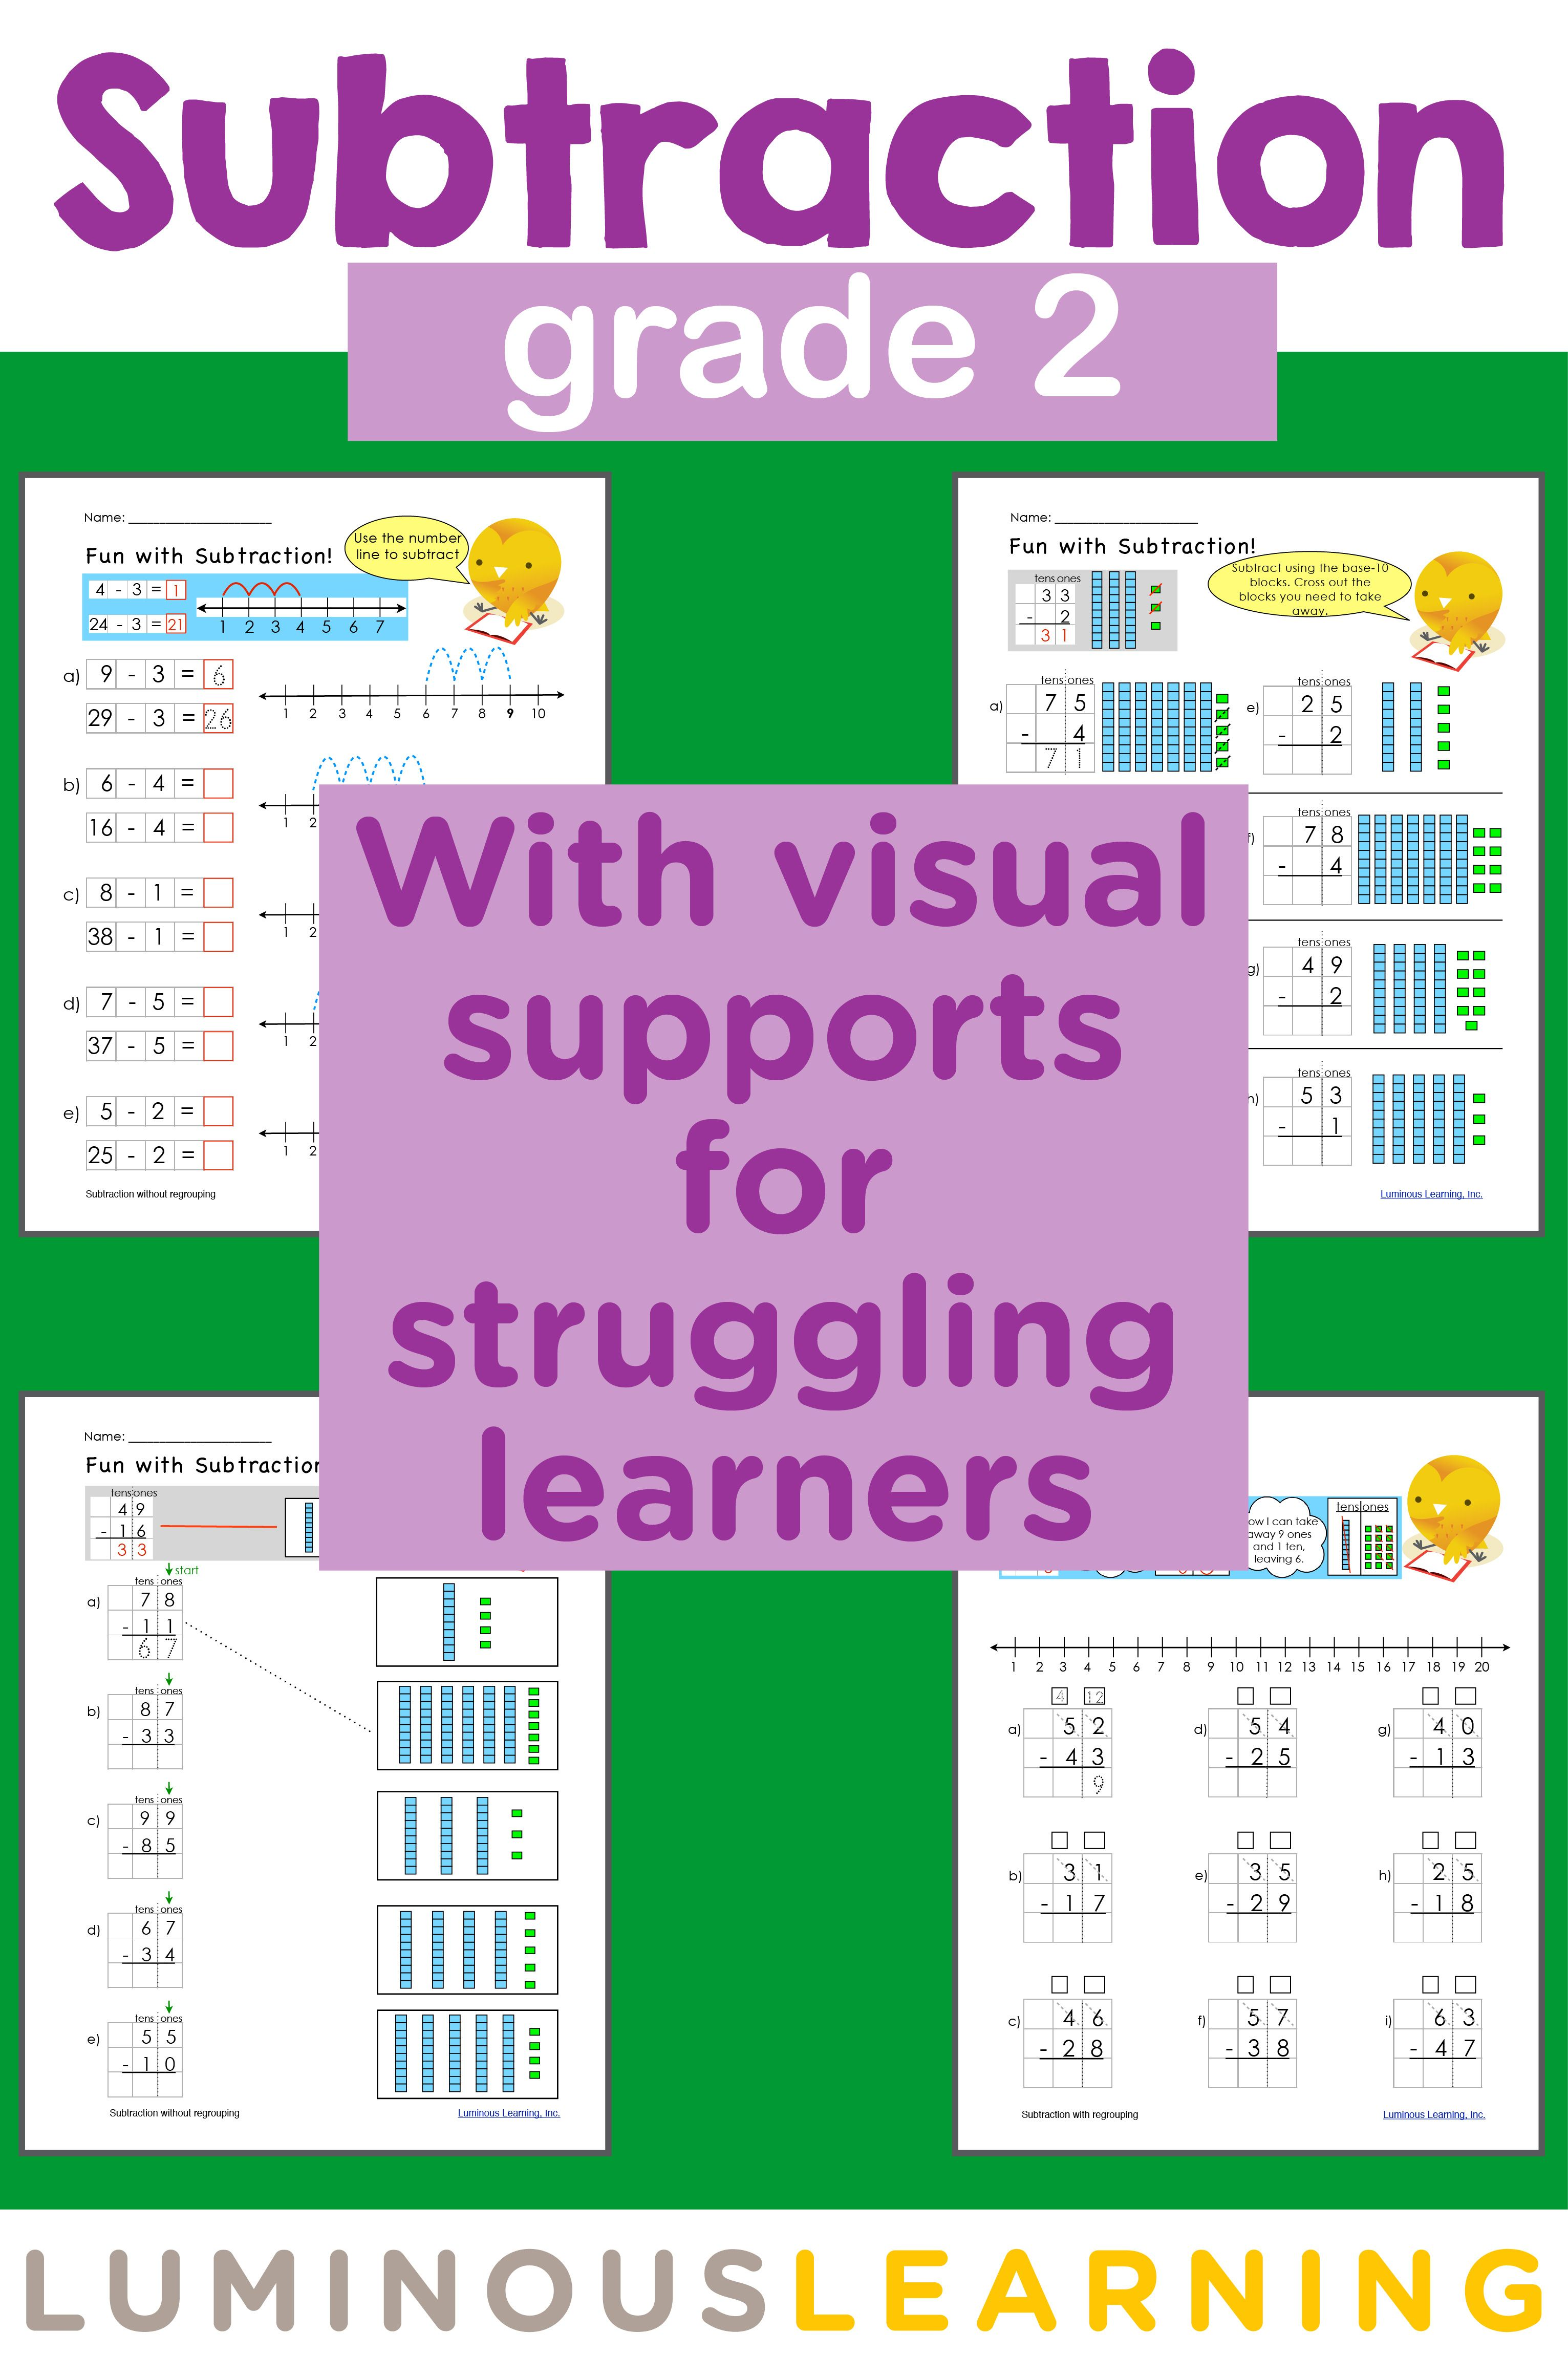 Luminous Learning Grade 2 Subtraction Workbook Empowers